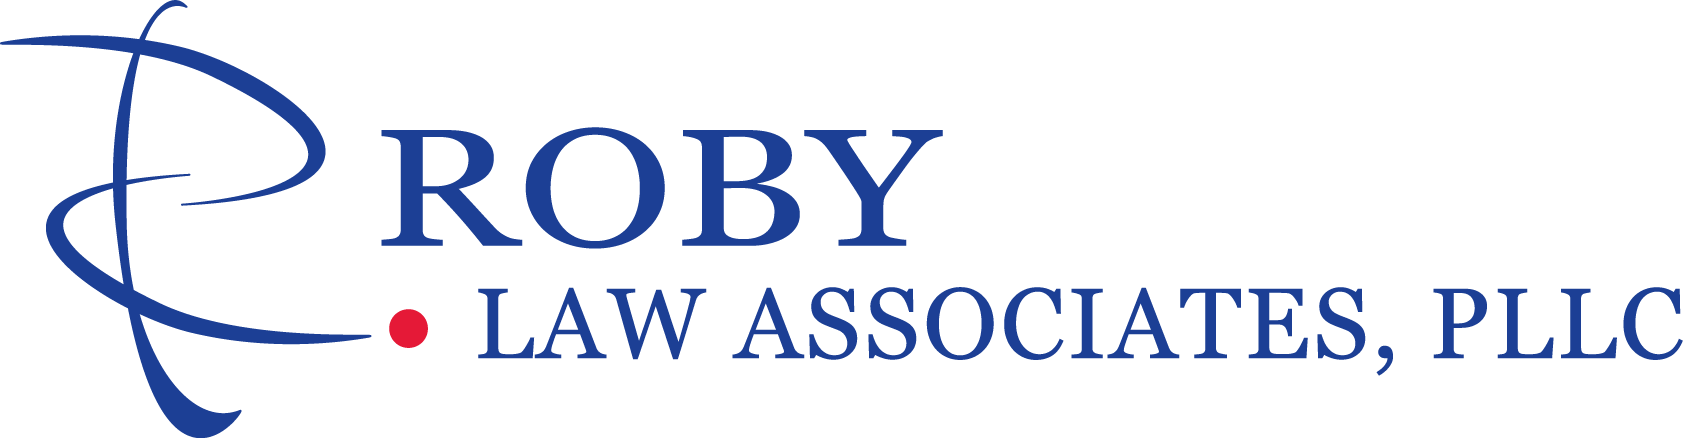 Roby RGB logo.png